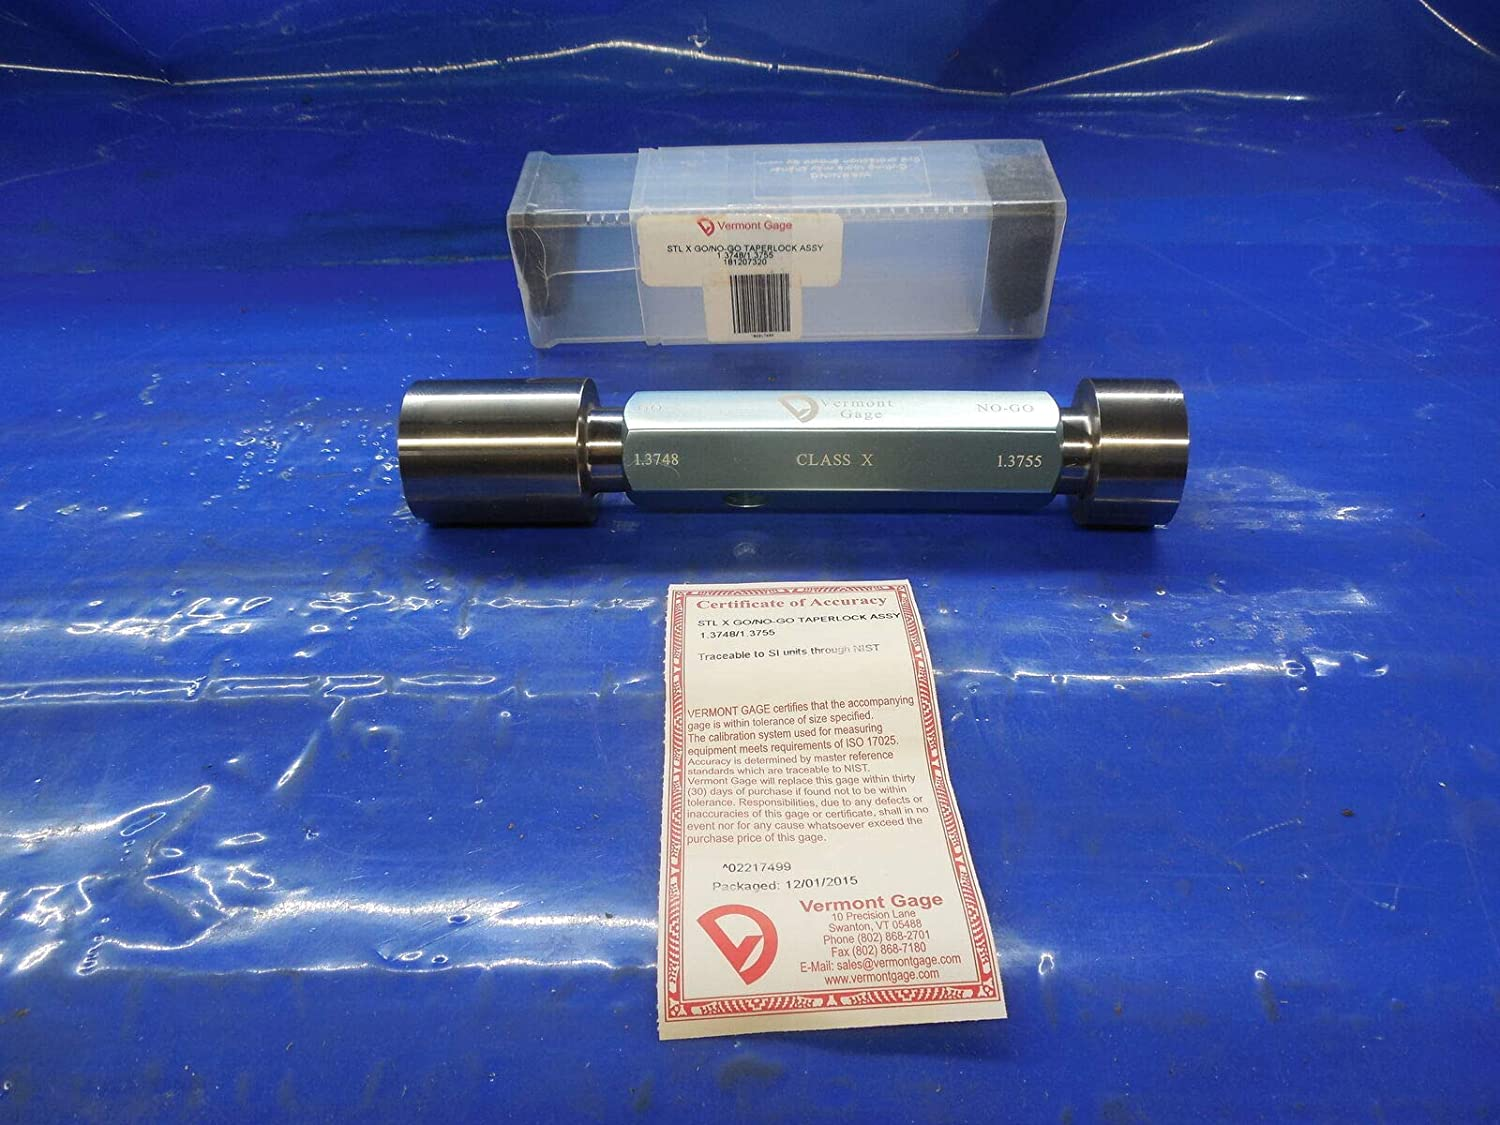 New 1.3748 & 1.3755 Class X Smooth PIN Plug GAGE GO NO GO Under & Oversize 1 3/8